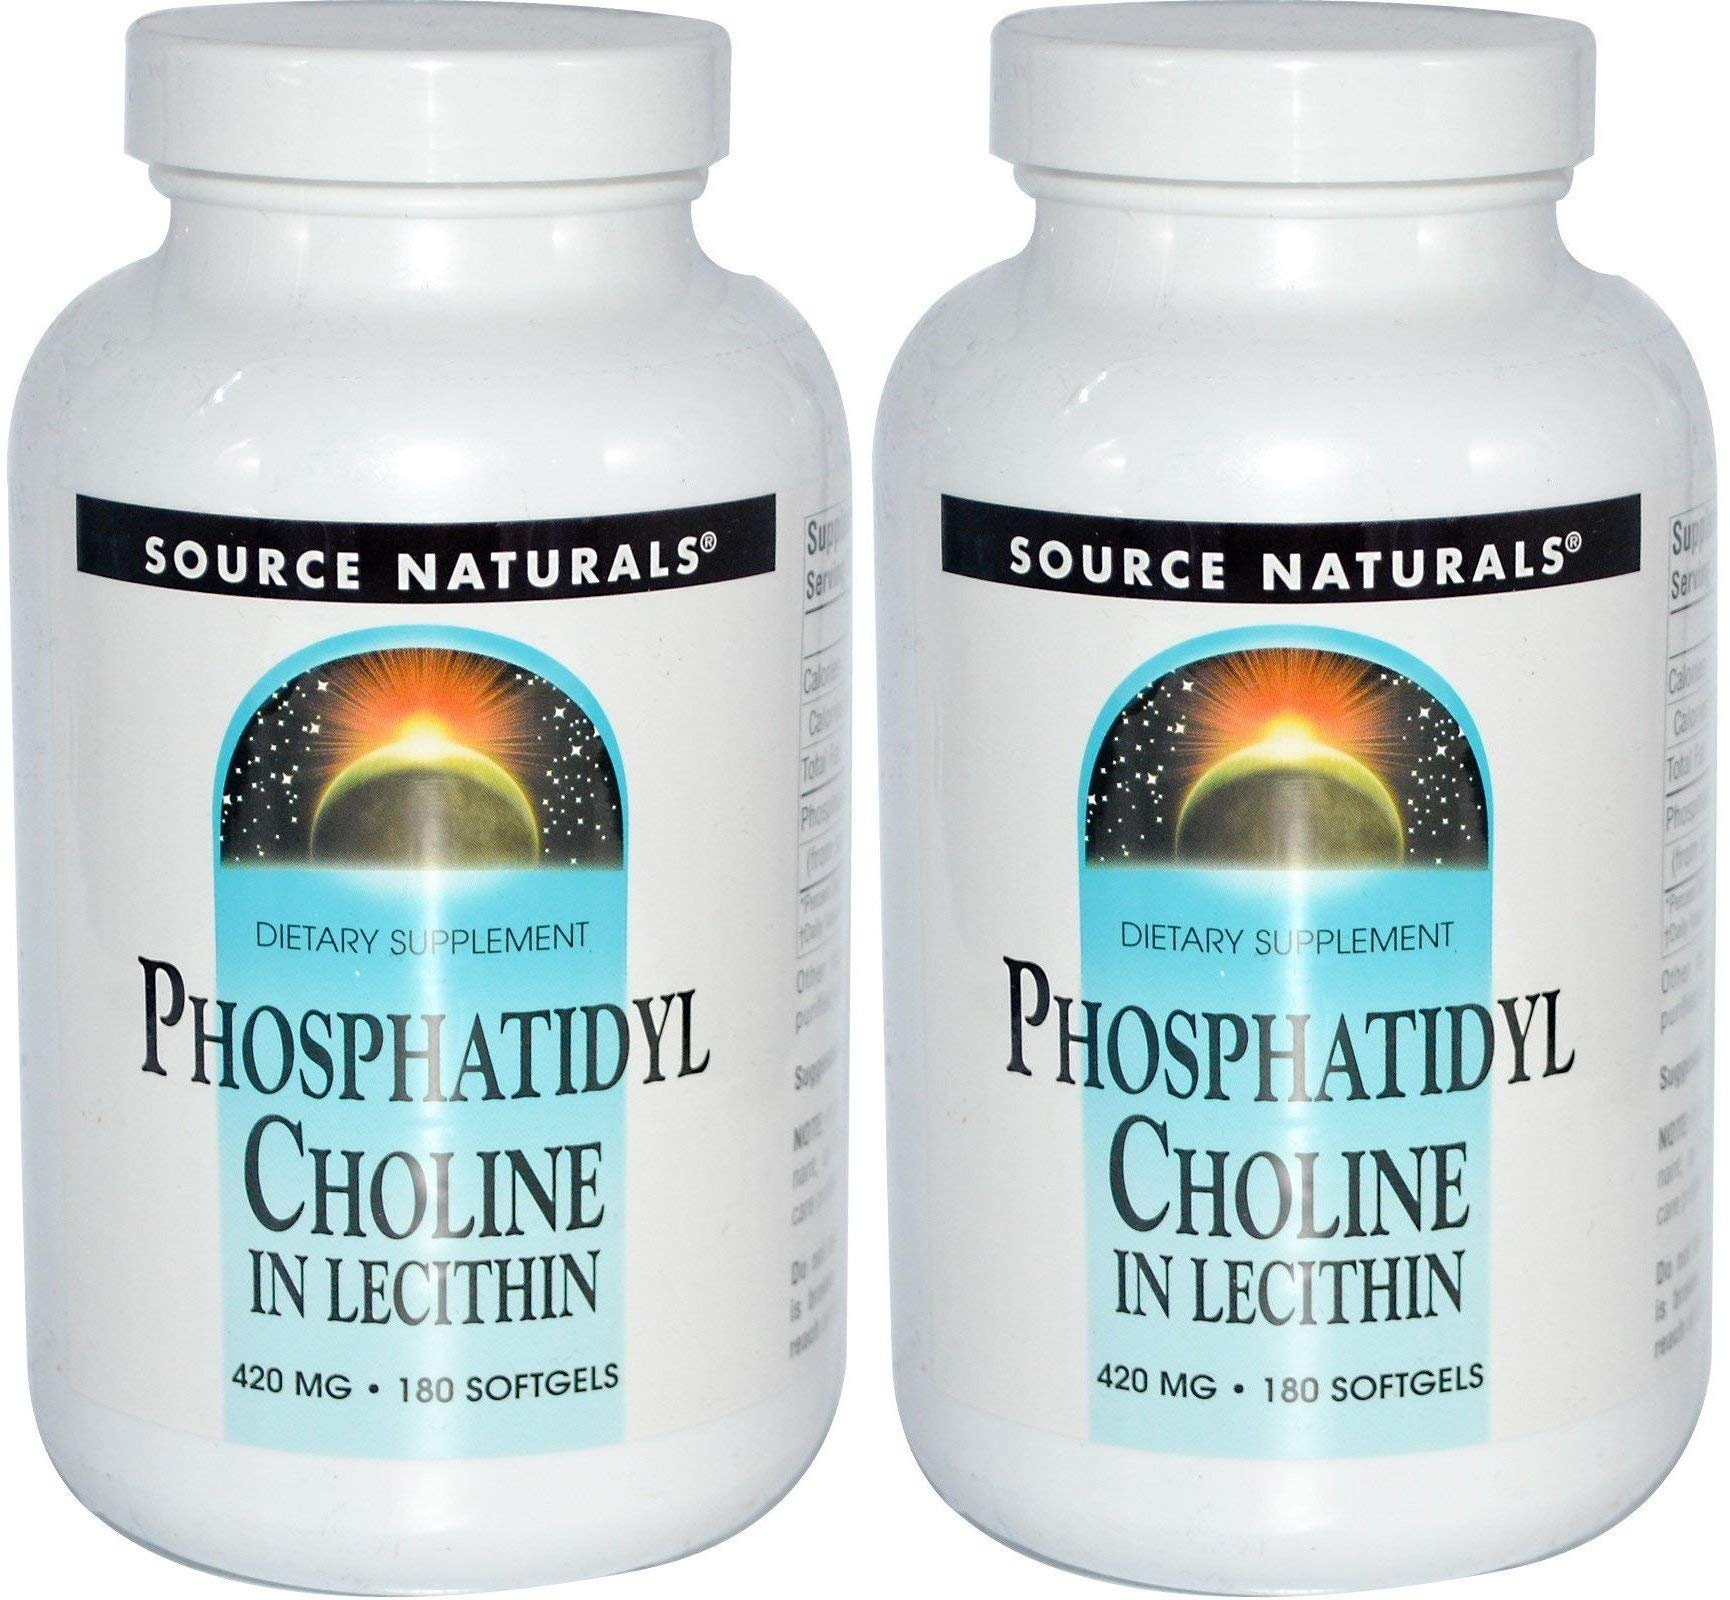 Source Naturals Phosphatidyl Choline (Pack Of 2), In Lecithin, 420 Mg, 180 Softgels by Natural Beauty Planet